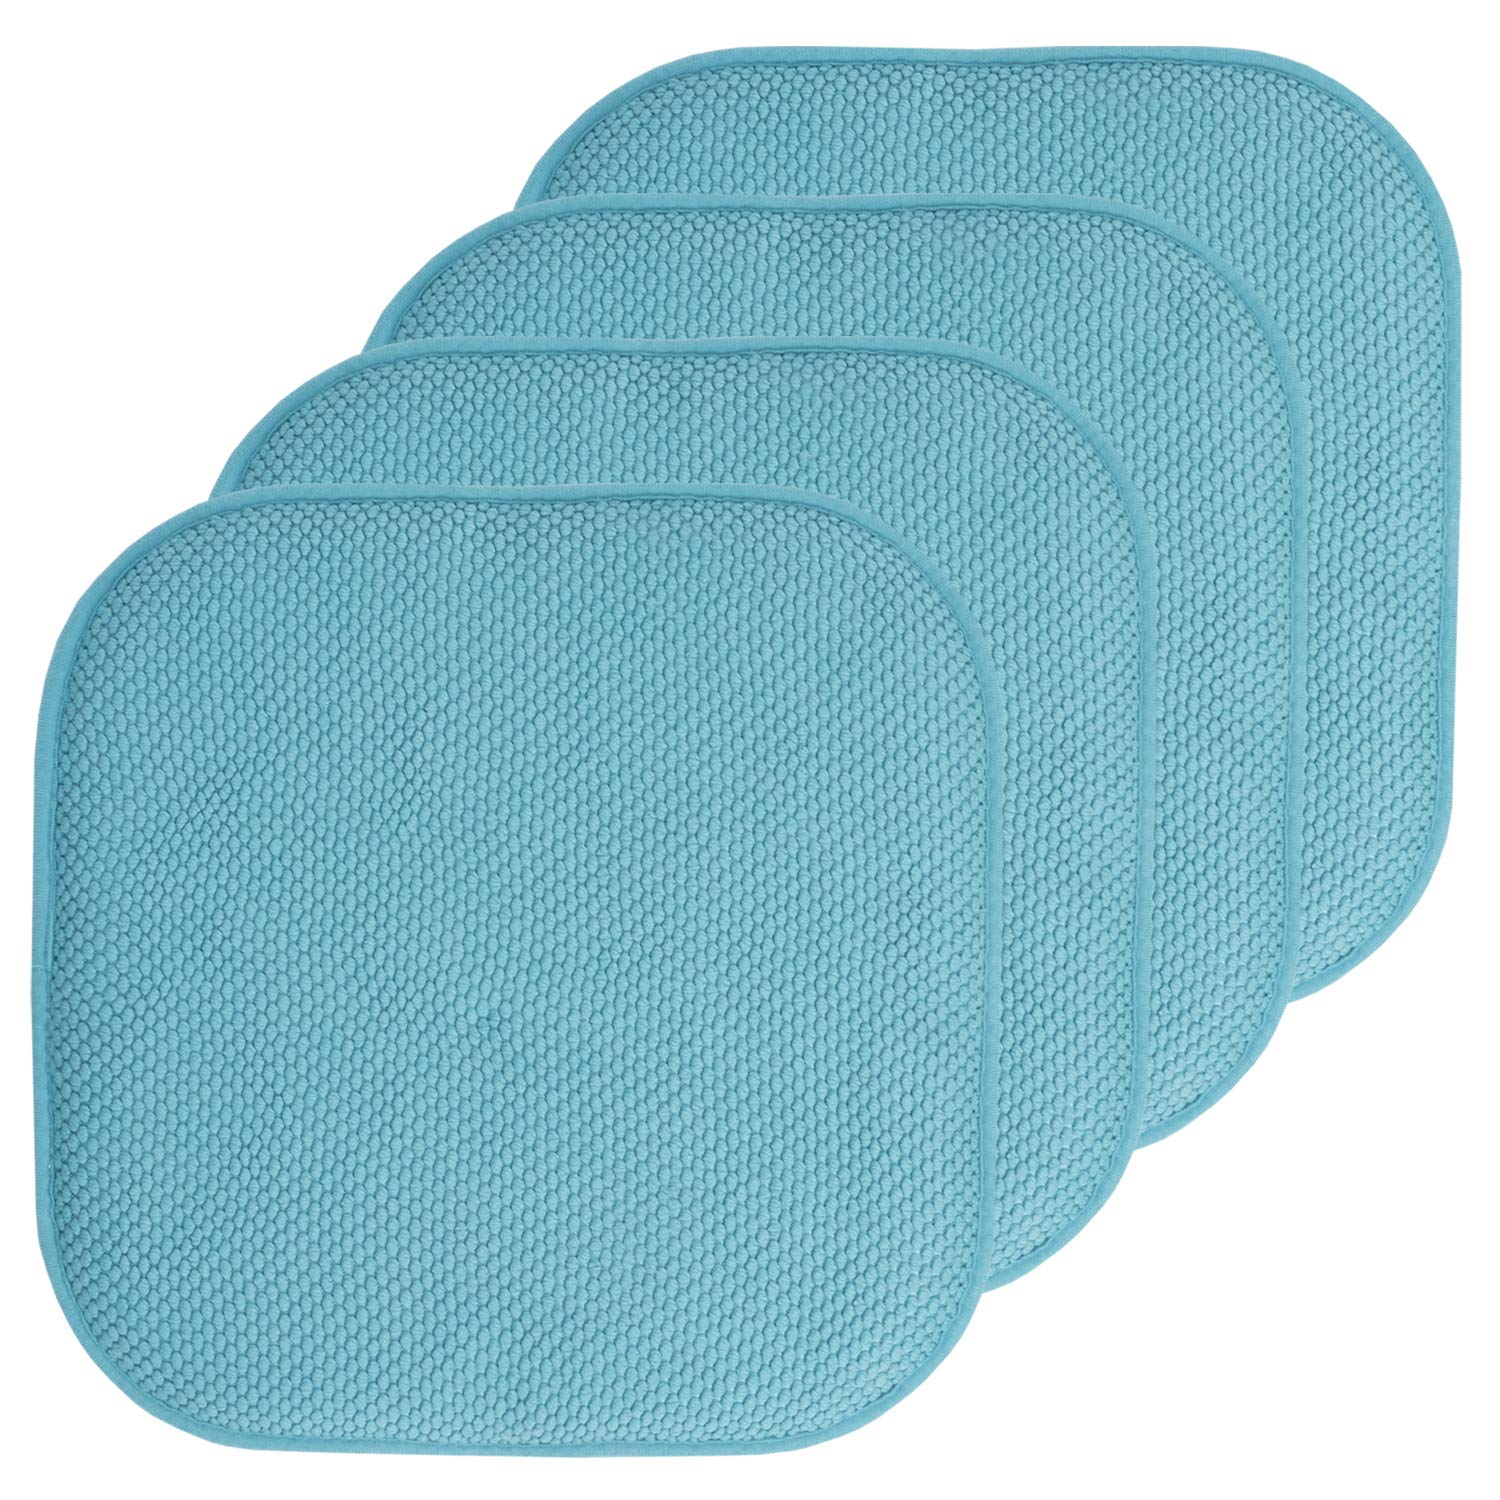 "Sweet Home Collection Chair Cushion Memory Foam Pads Honeycomb Pattern Slip Non Skid Rubber Back Rounded Square 16"" x 16"" Seat Cover, 4 Pack, Teal"